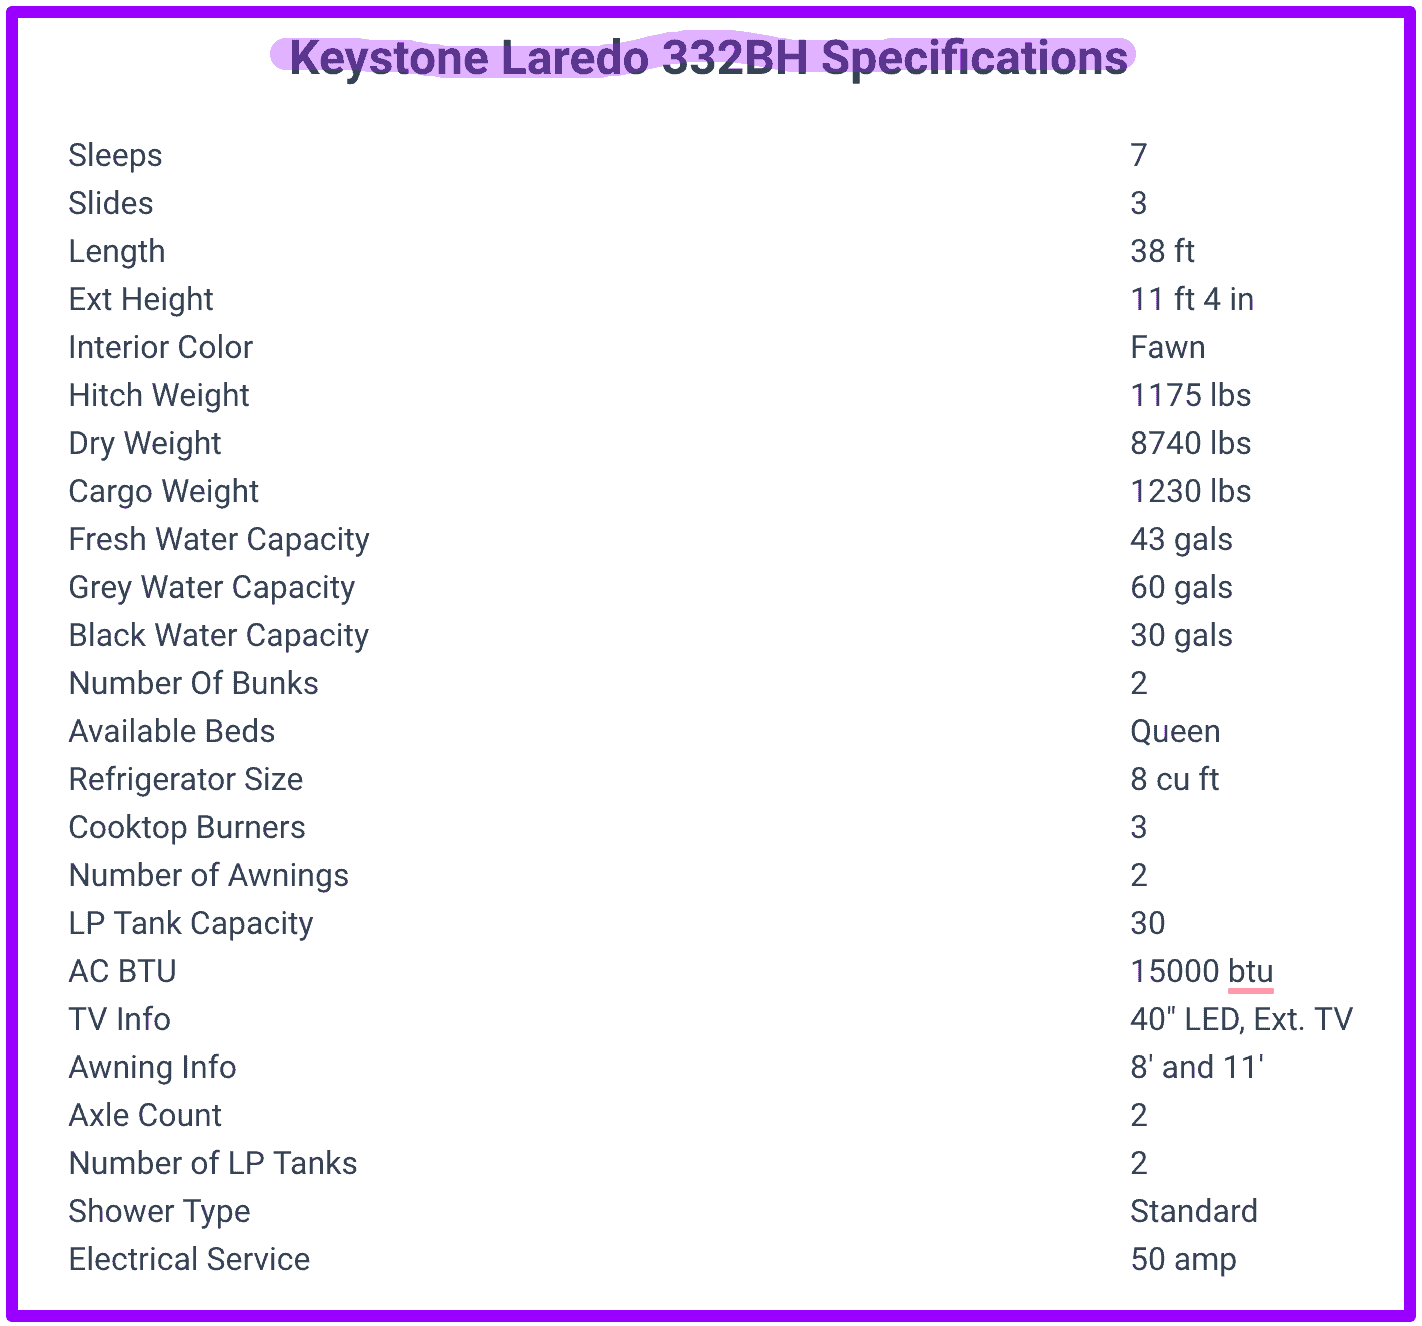 Keystone Laredo 332BH travel trailer specifications